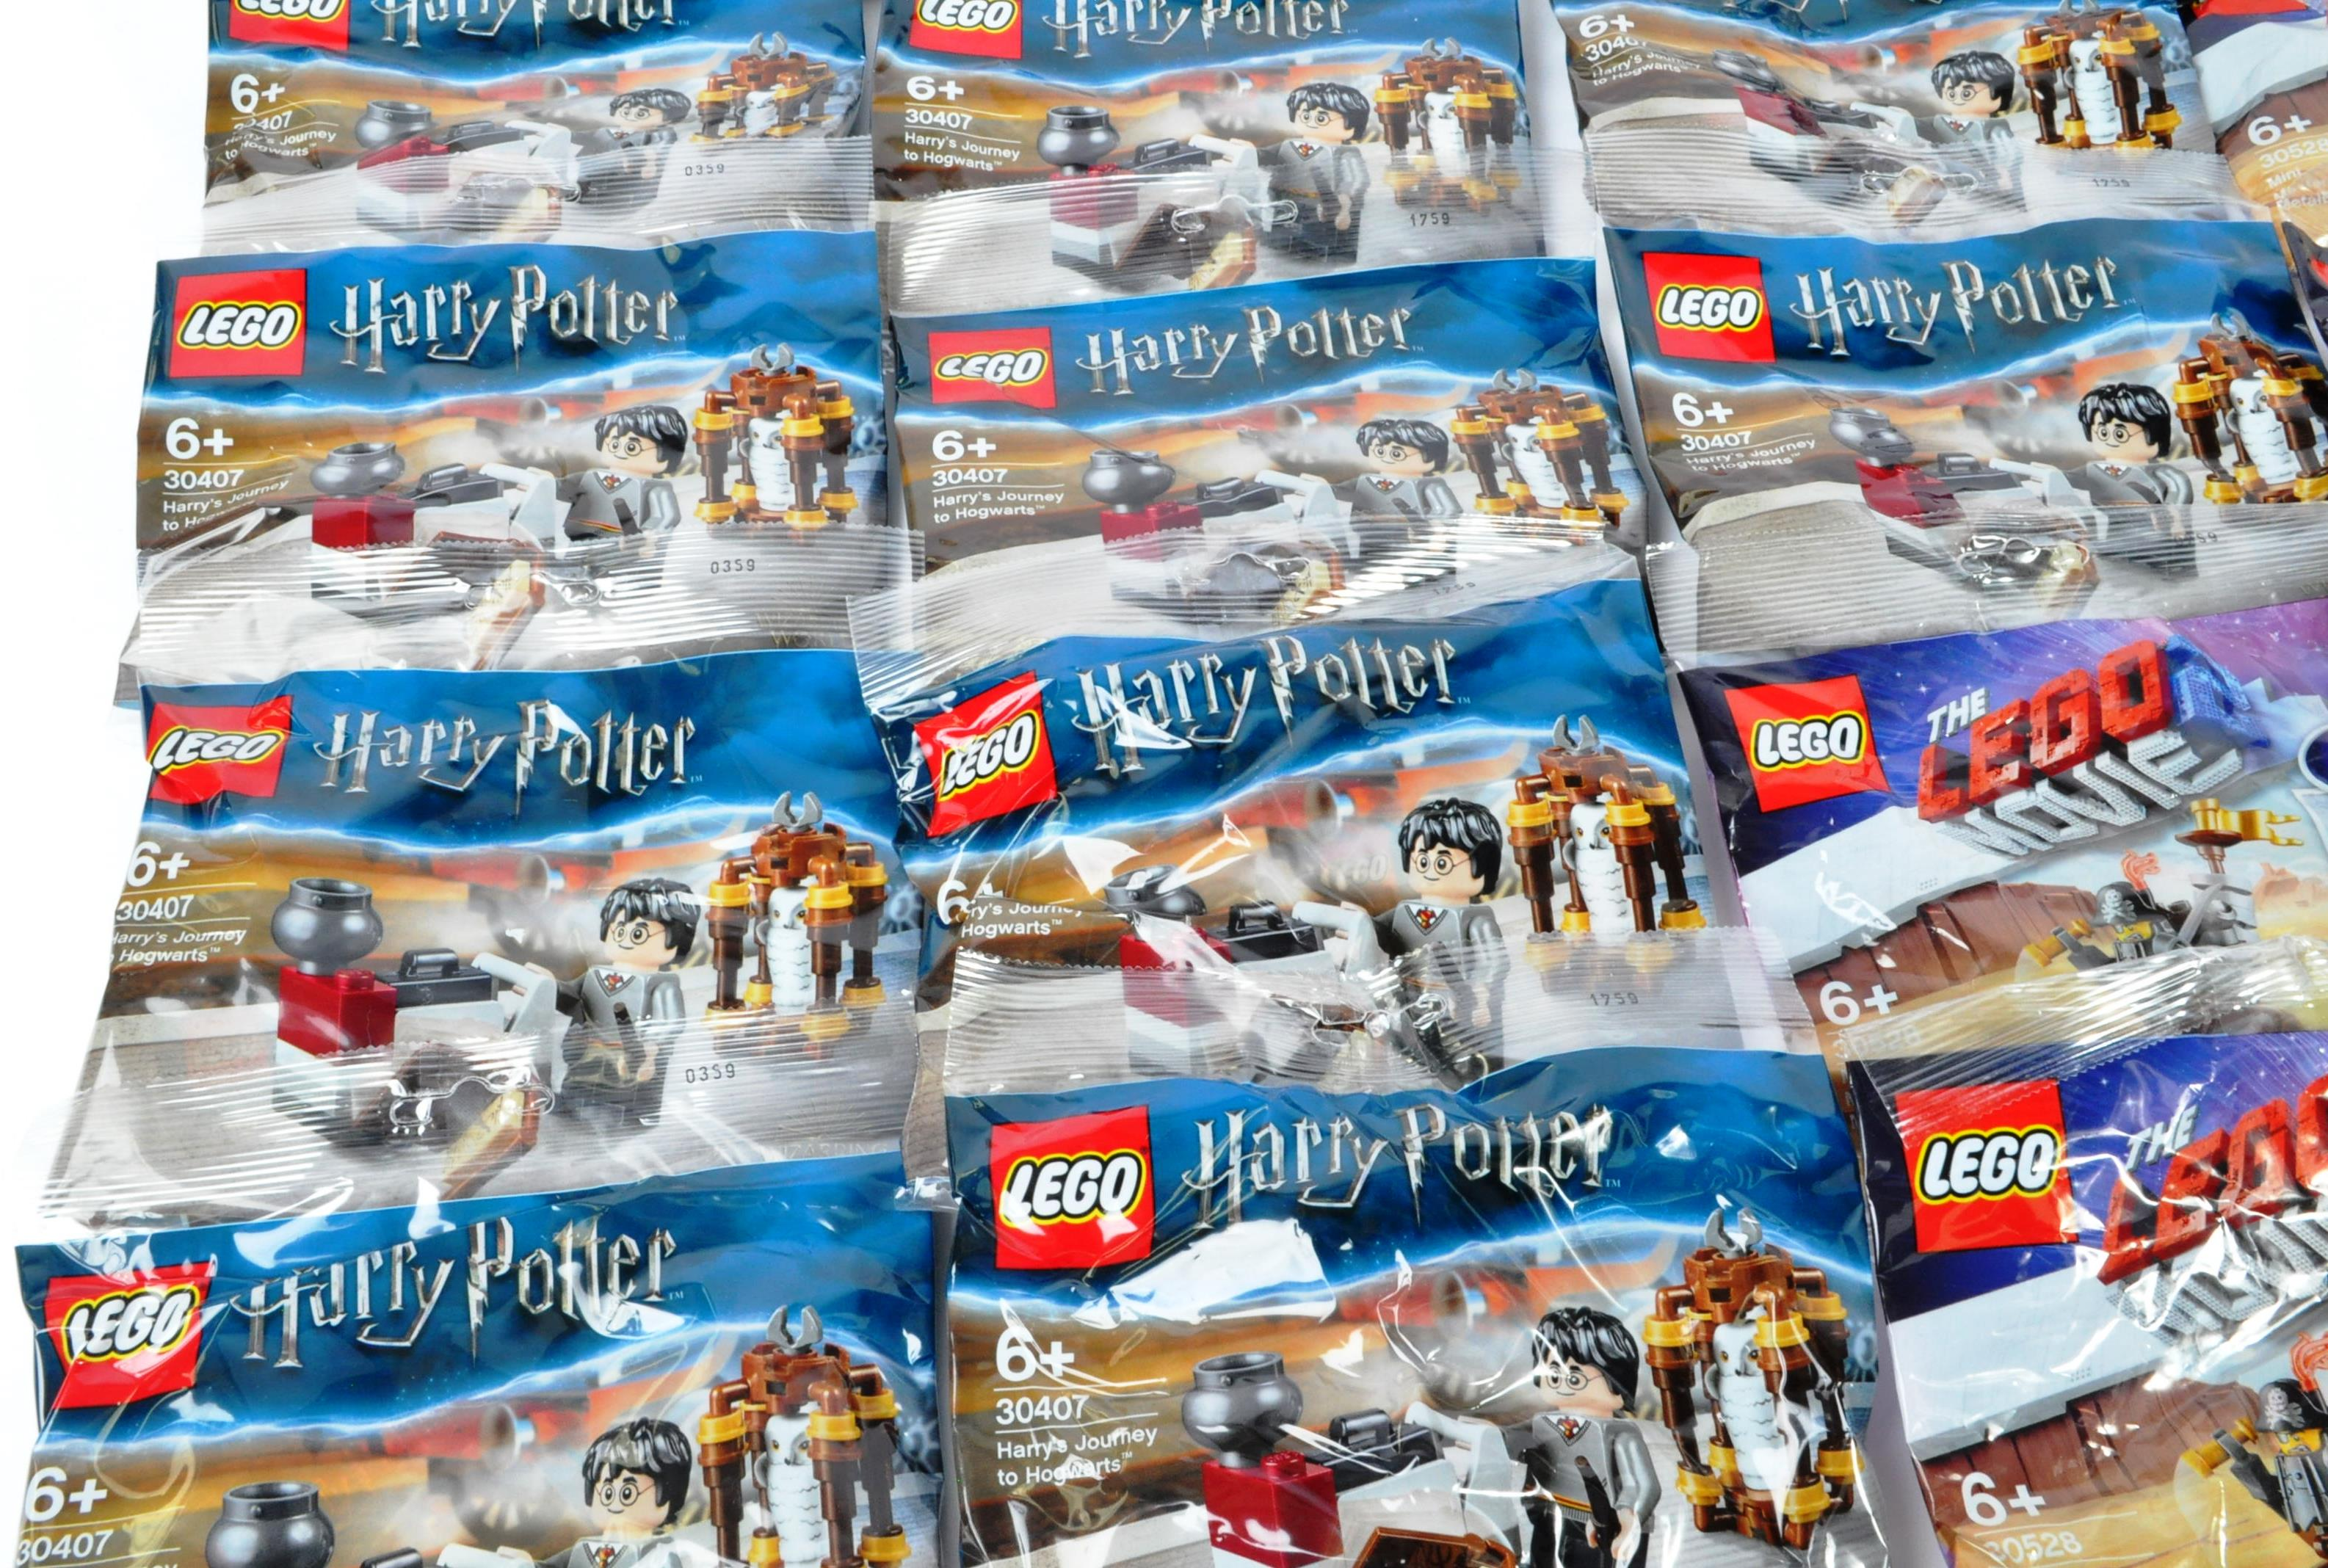 LEGO - LARGE COLLECTION OF LEGO MOVIE, CITY & HARRY POTTER SETS - Image 3 of 5